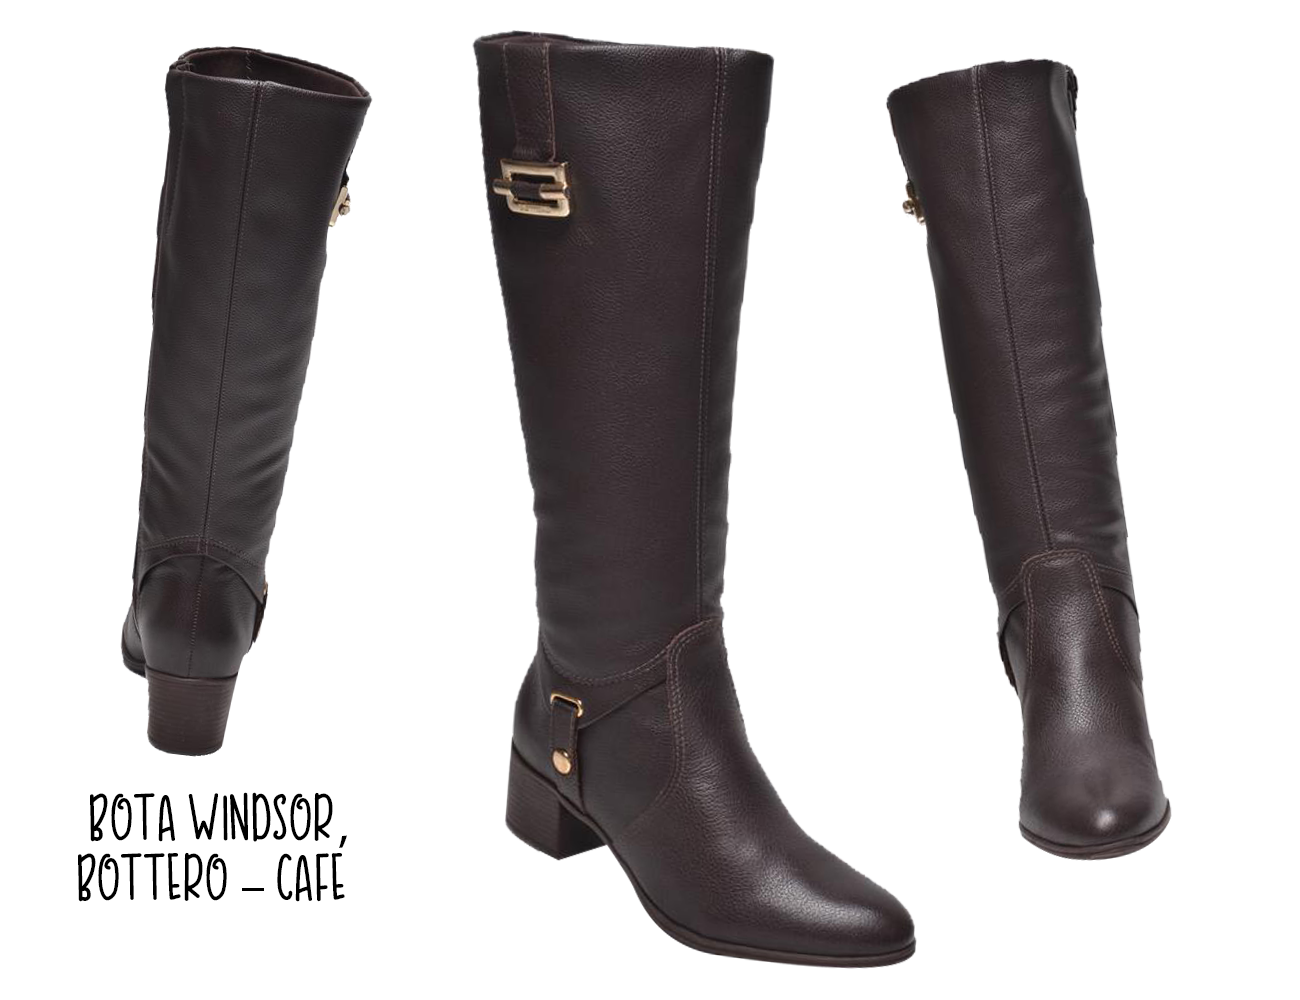 Bota Windsor Bottero – Café blog